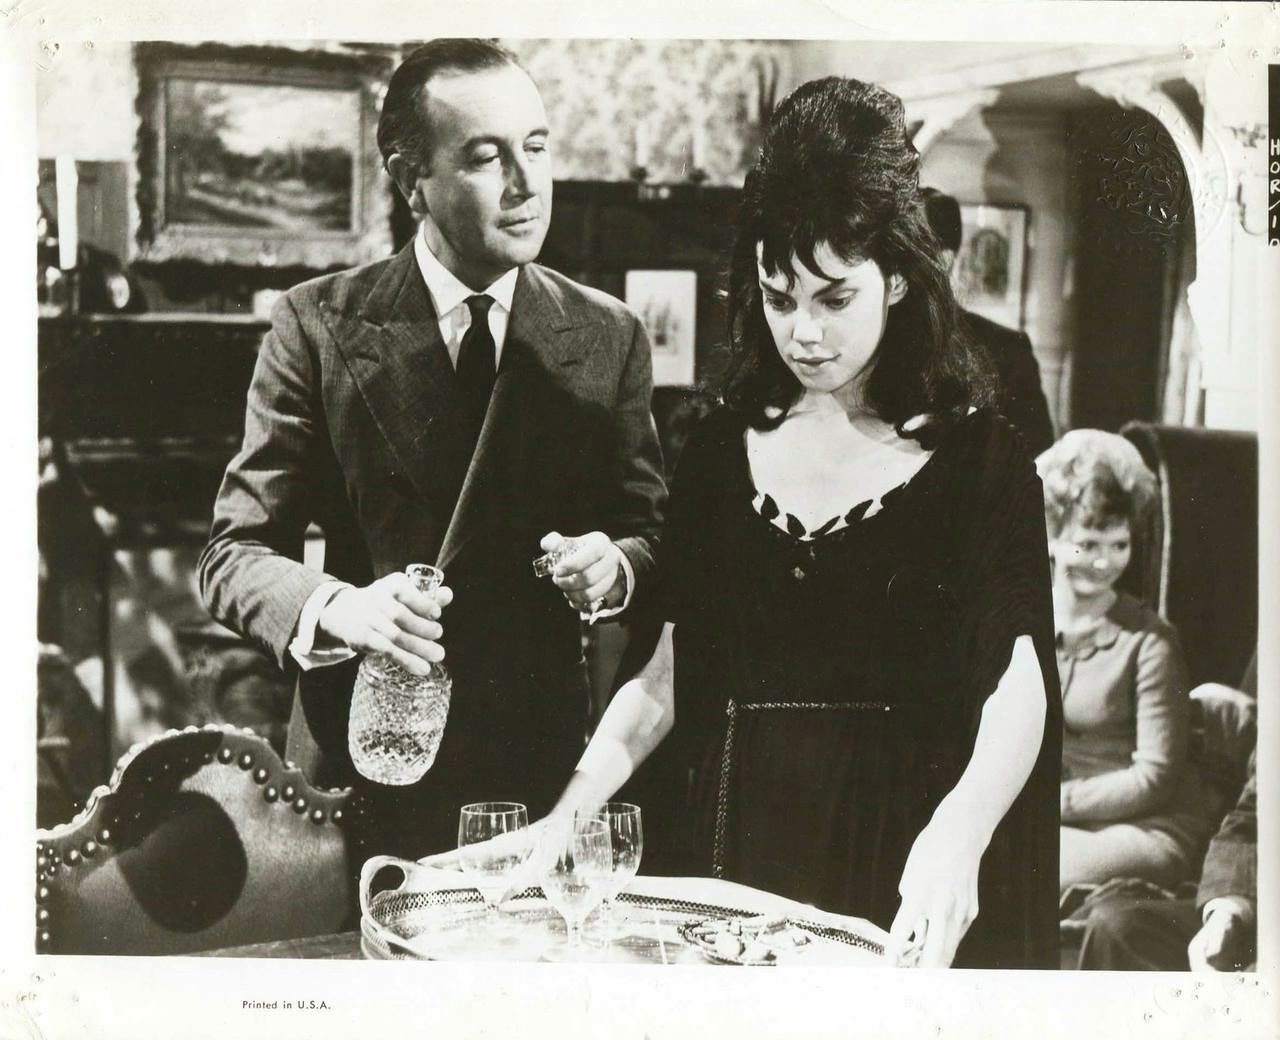 The Horror Of It All Starring Dennis Price and Andree Melly